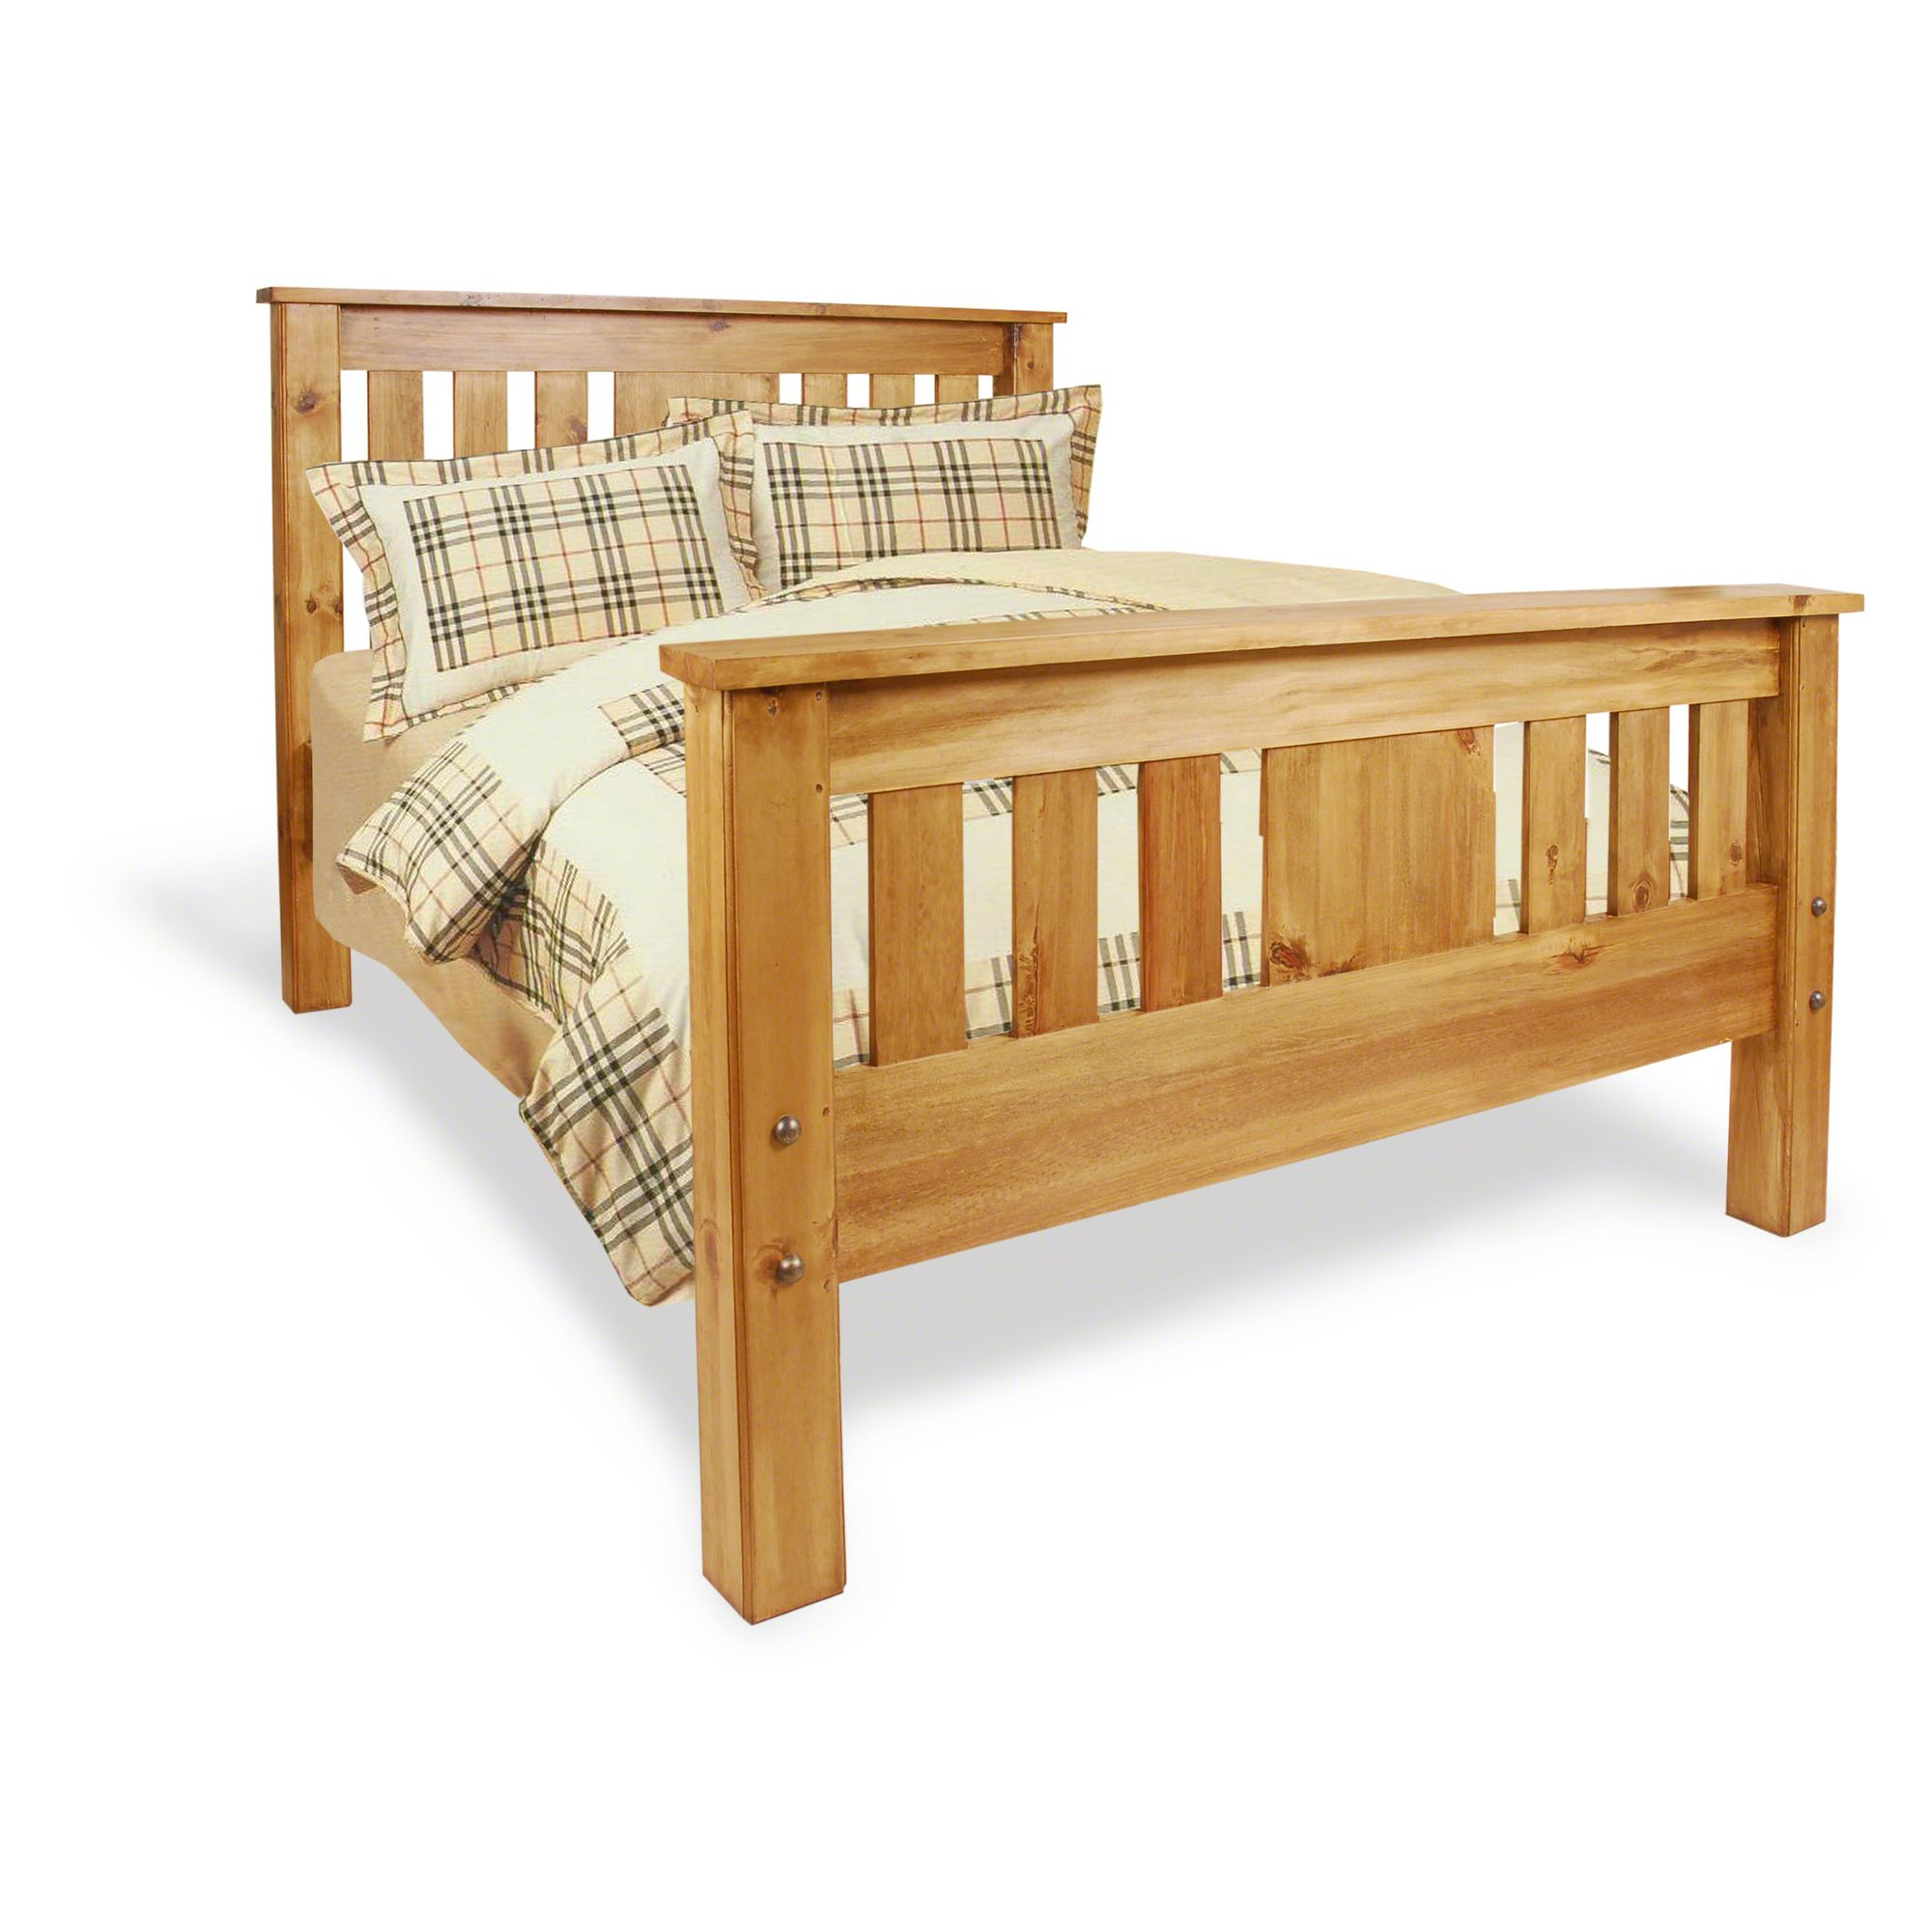 Oceans Apart Vintage Panel Bed Frame - Double at Tesco Direct